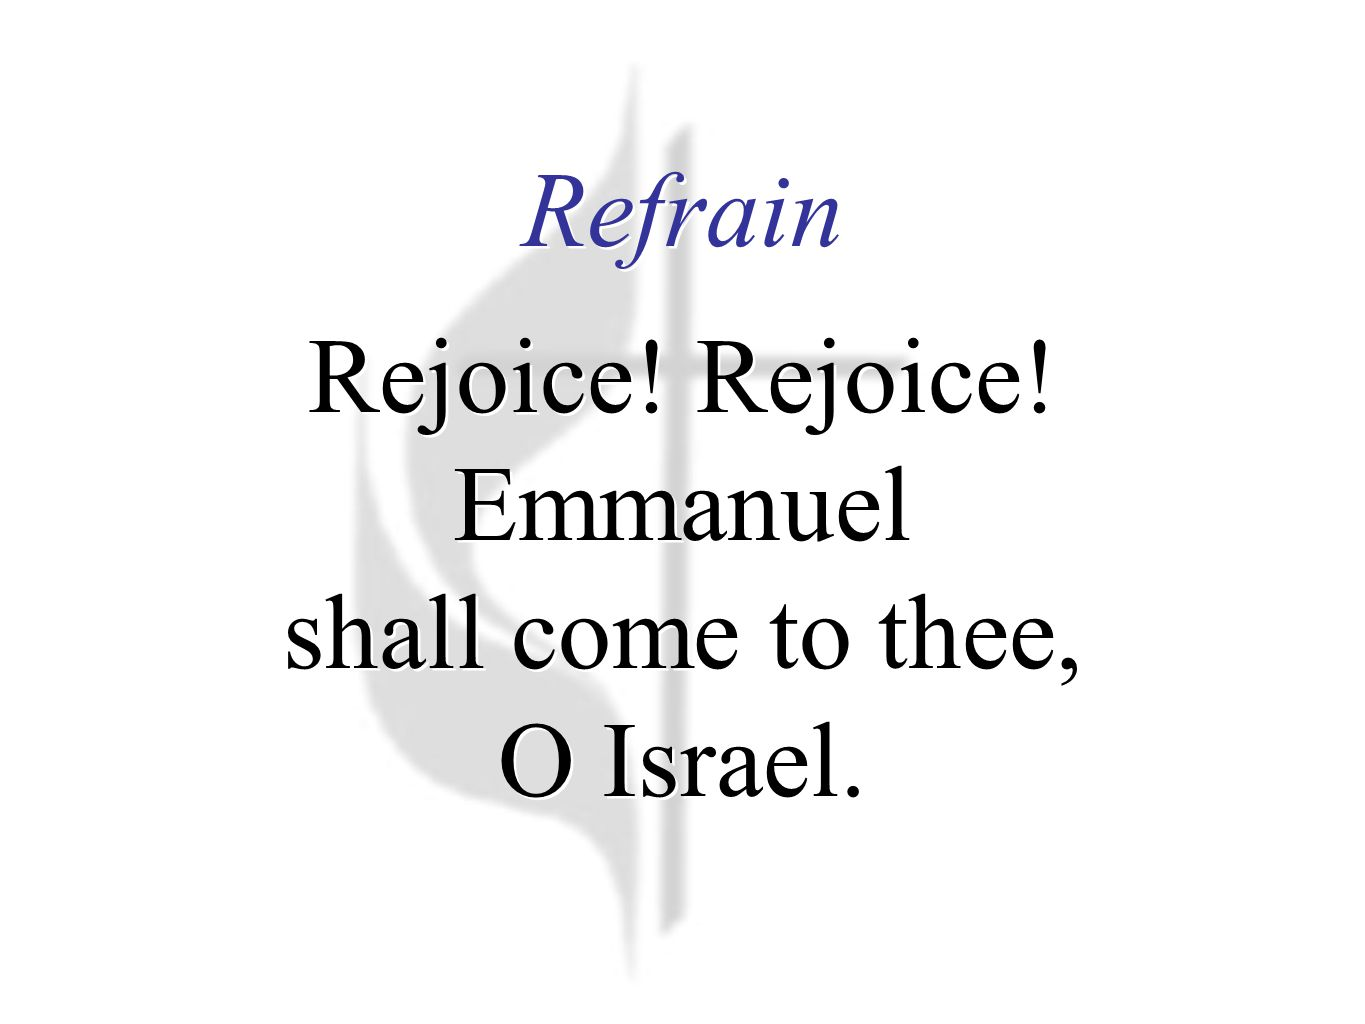 Refrain Rejoice. Rejoice. Emmanuel shall come to thee, O Israel.